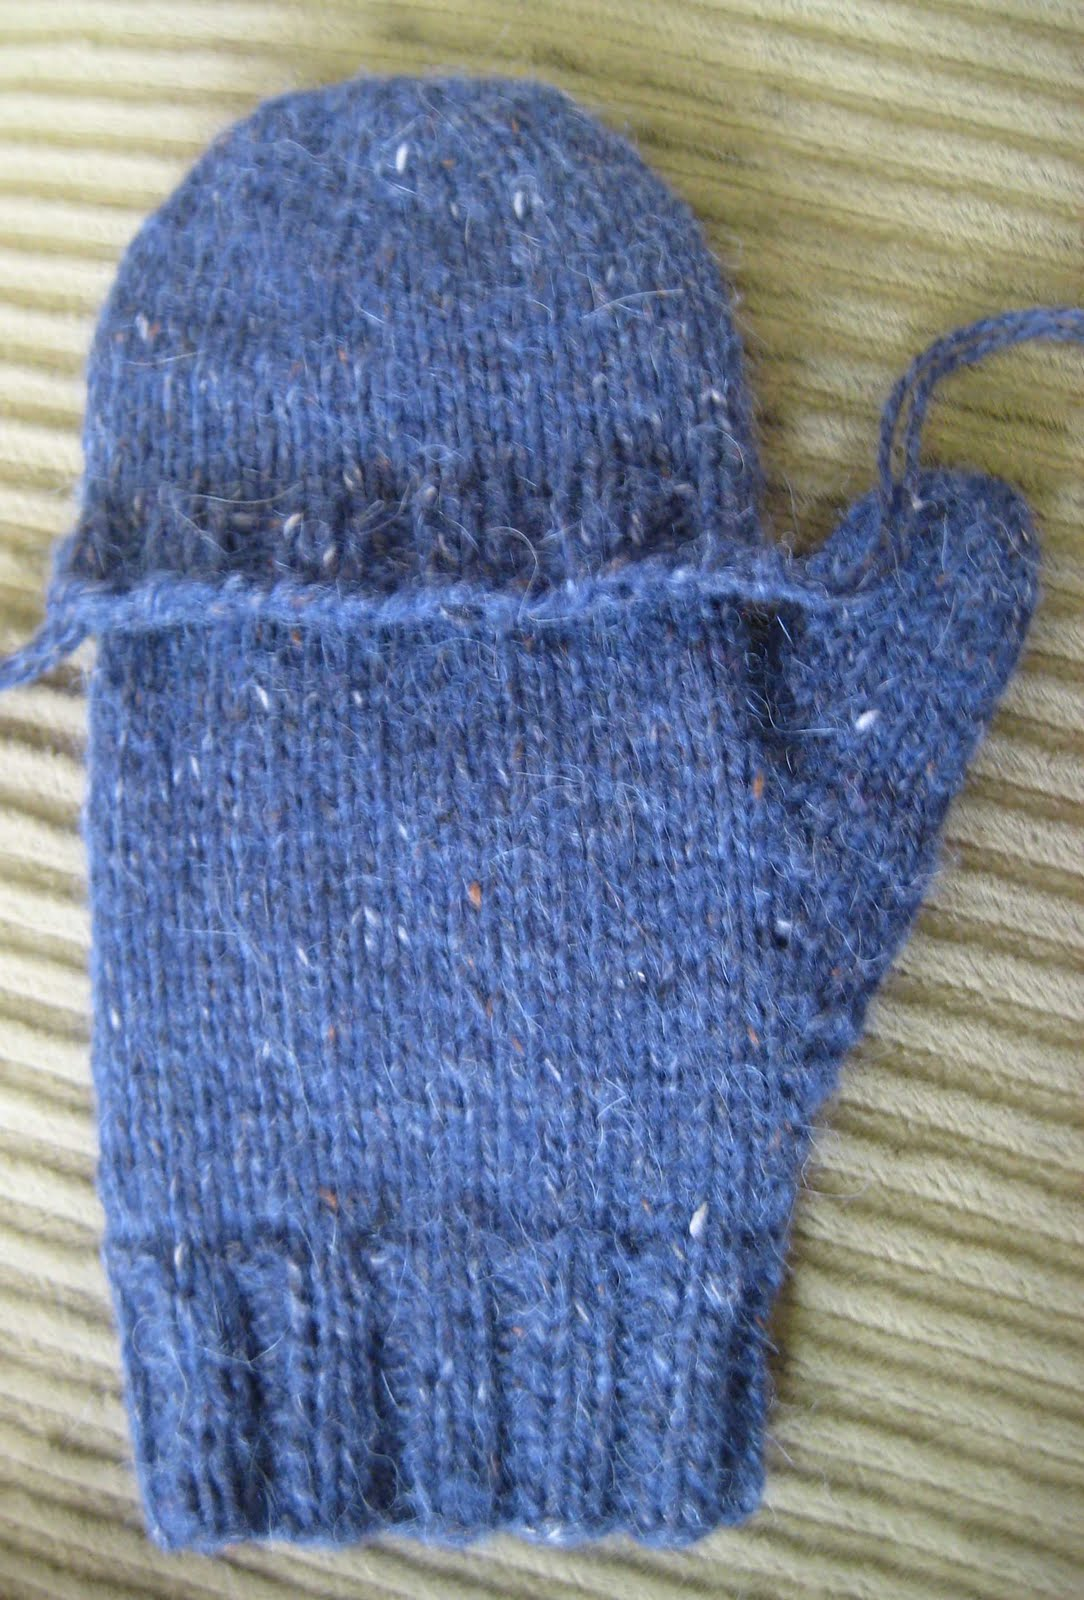 Knitting Pattern For Mittens With Flaps : ChemKnits: Convertible Fenway Mitts (Convertible Mittens)